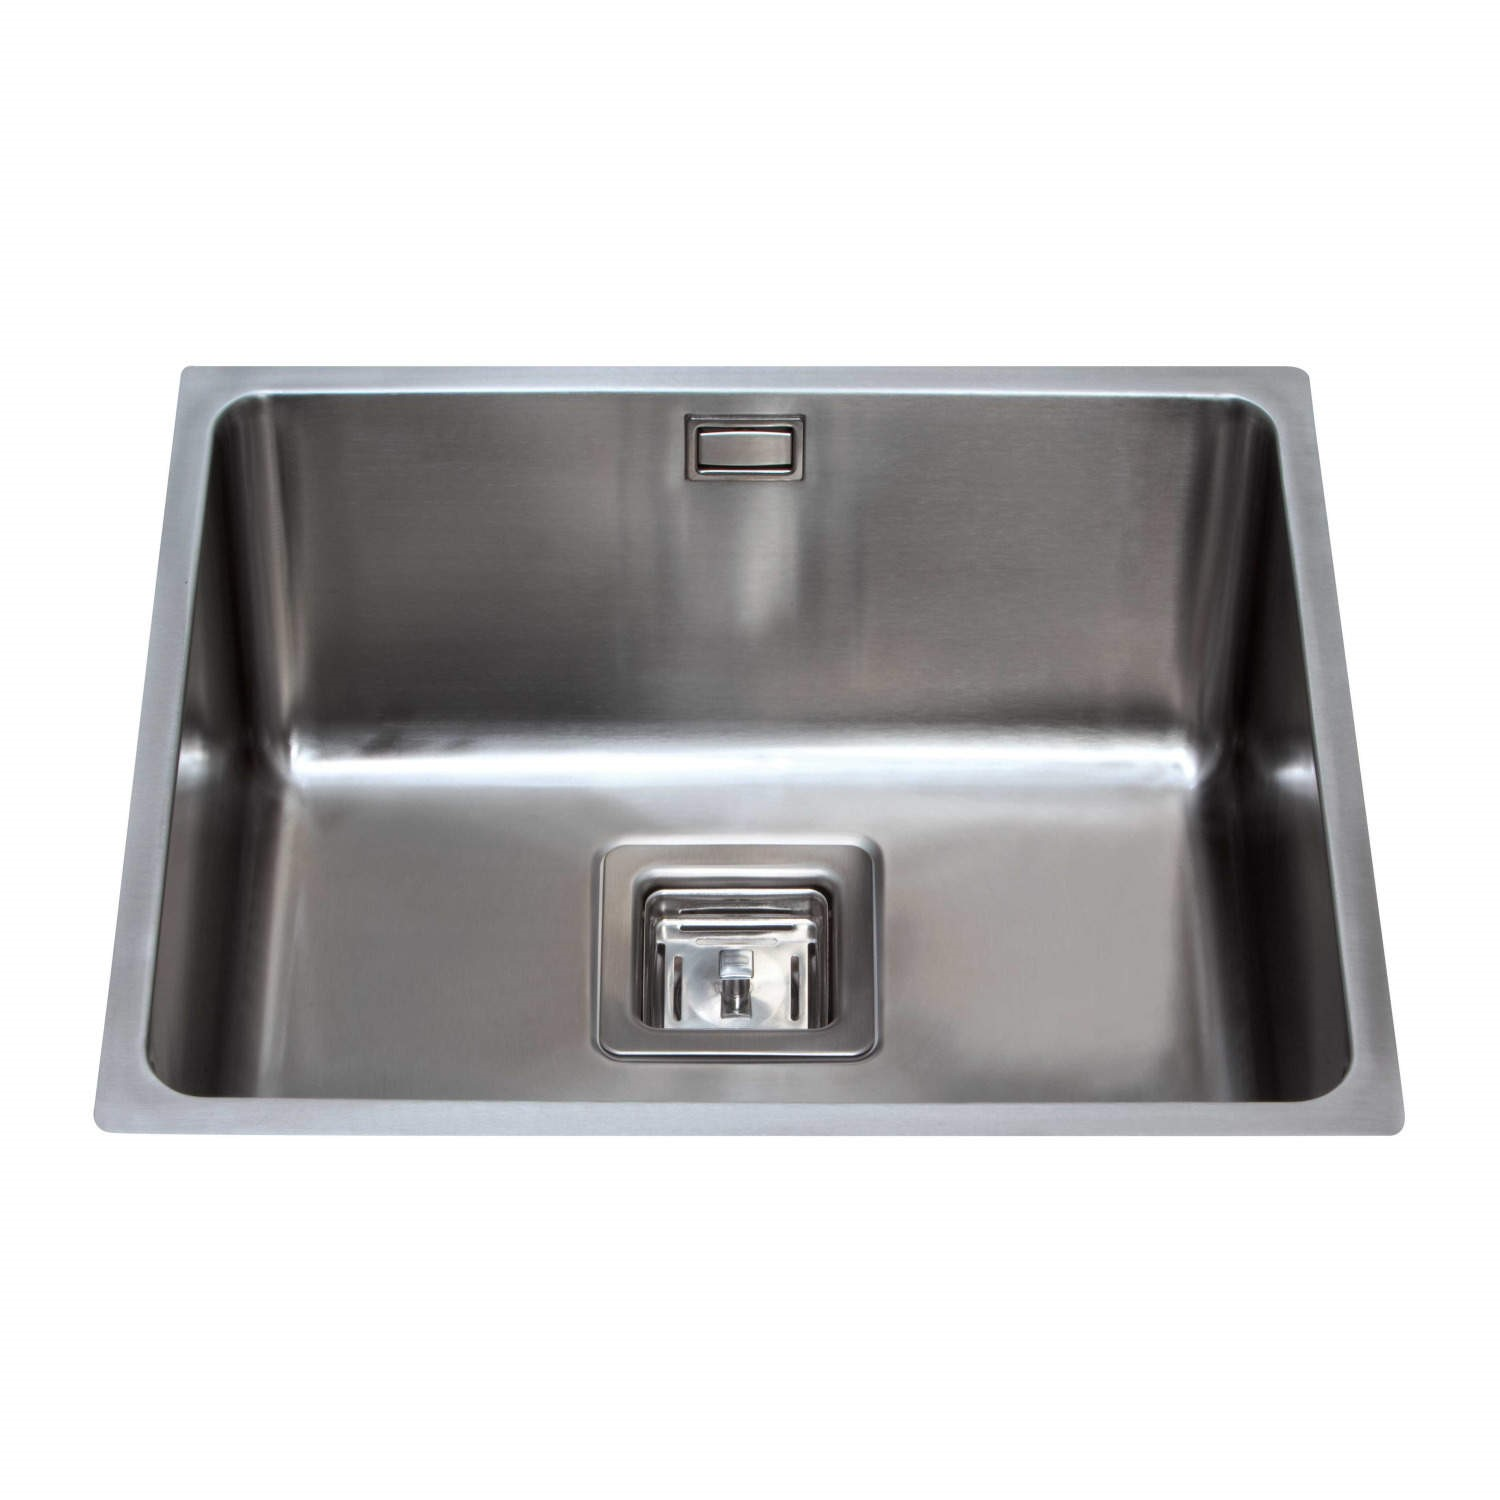 single bowl stainless kitchen sink suite deals cda ksc24ss square undermount steel